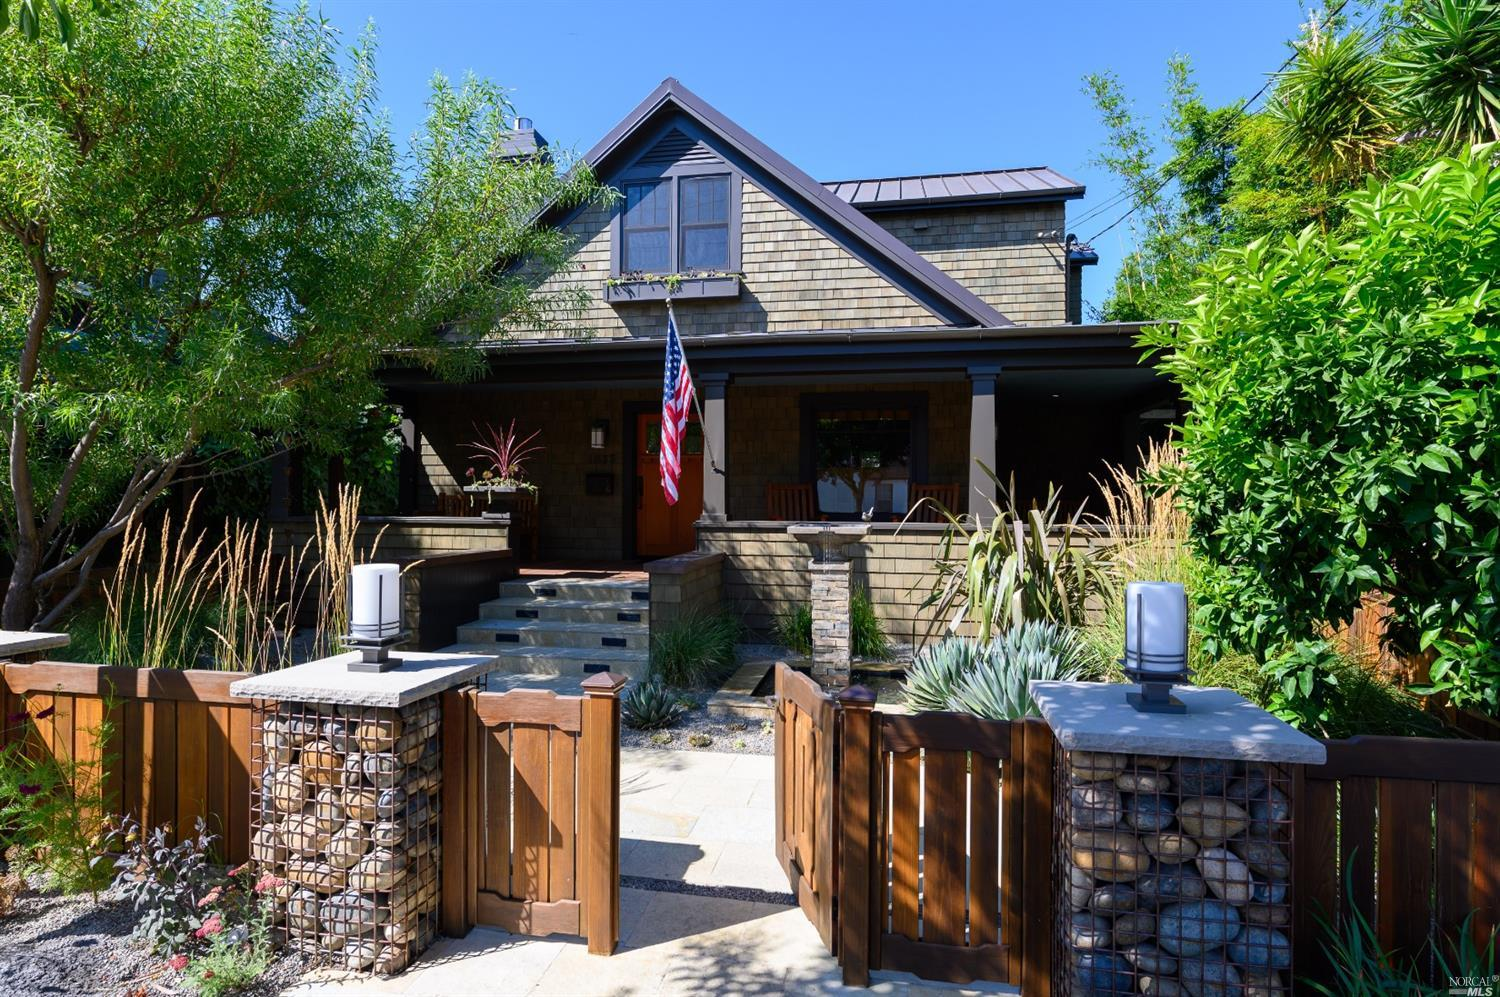 Downtown Napa CA Homes for sale - Napa Valley Real Estate